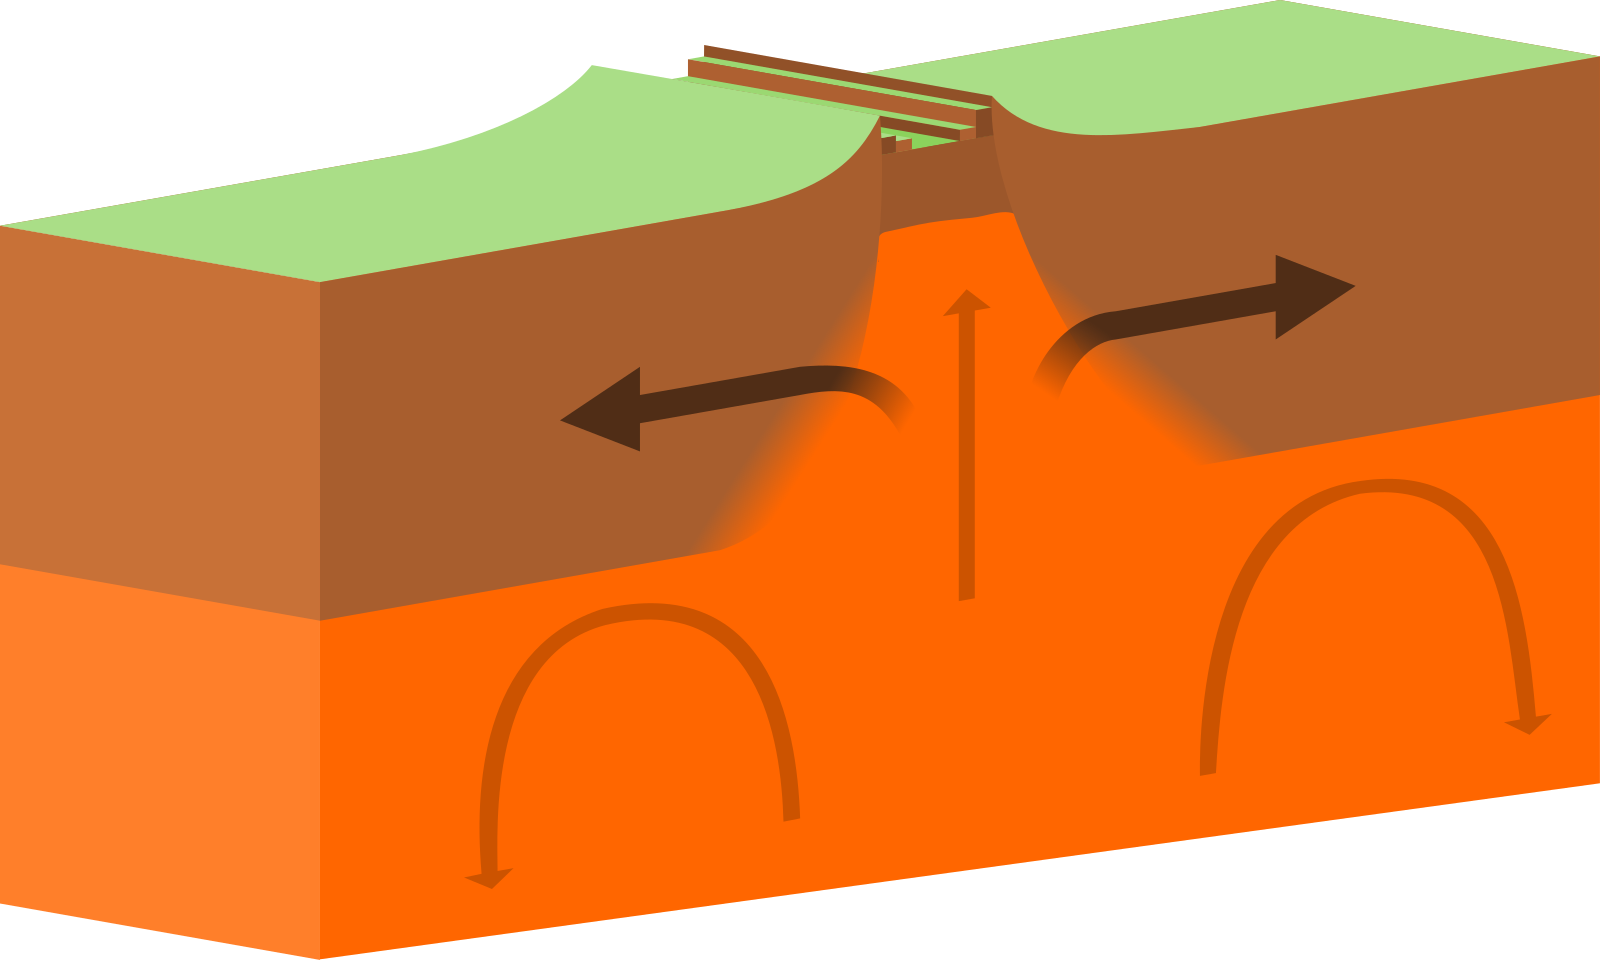 Plate clipart stack plate. Planetary science tectonics is